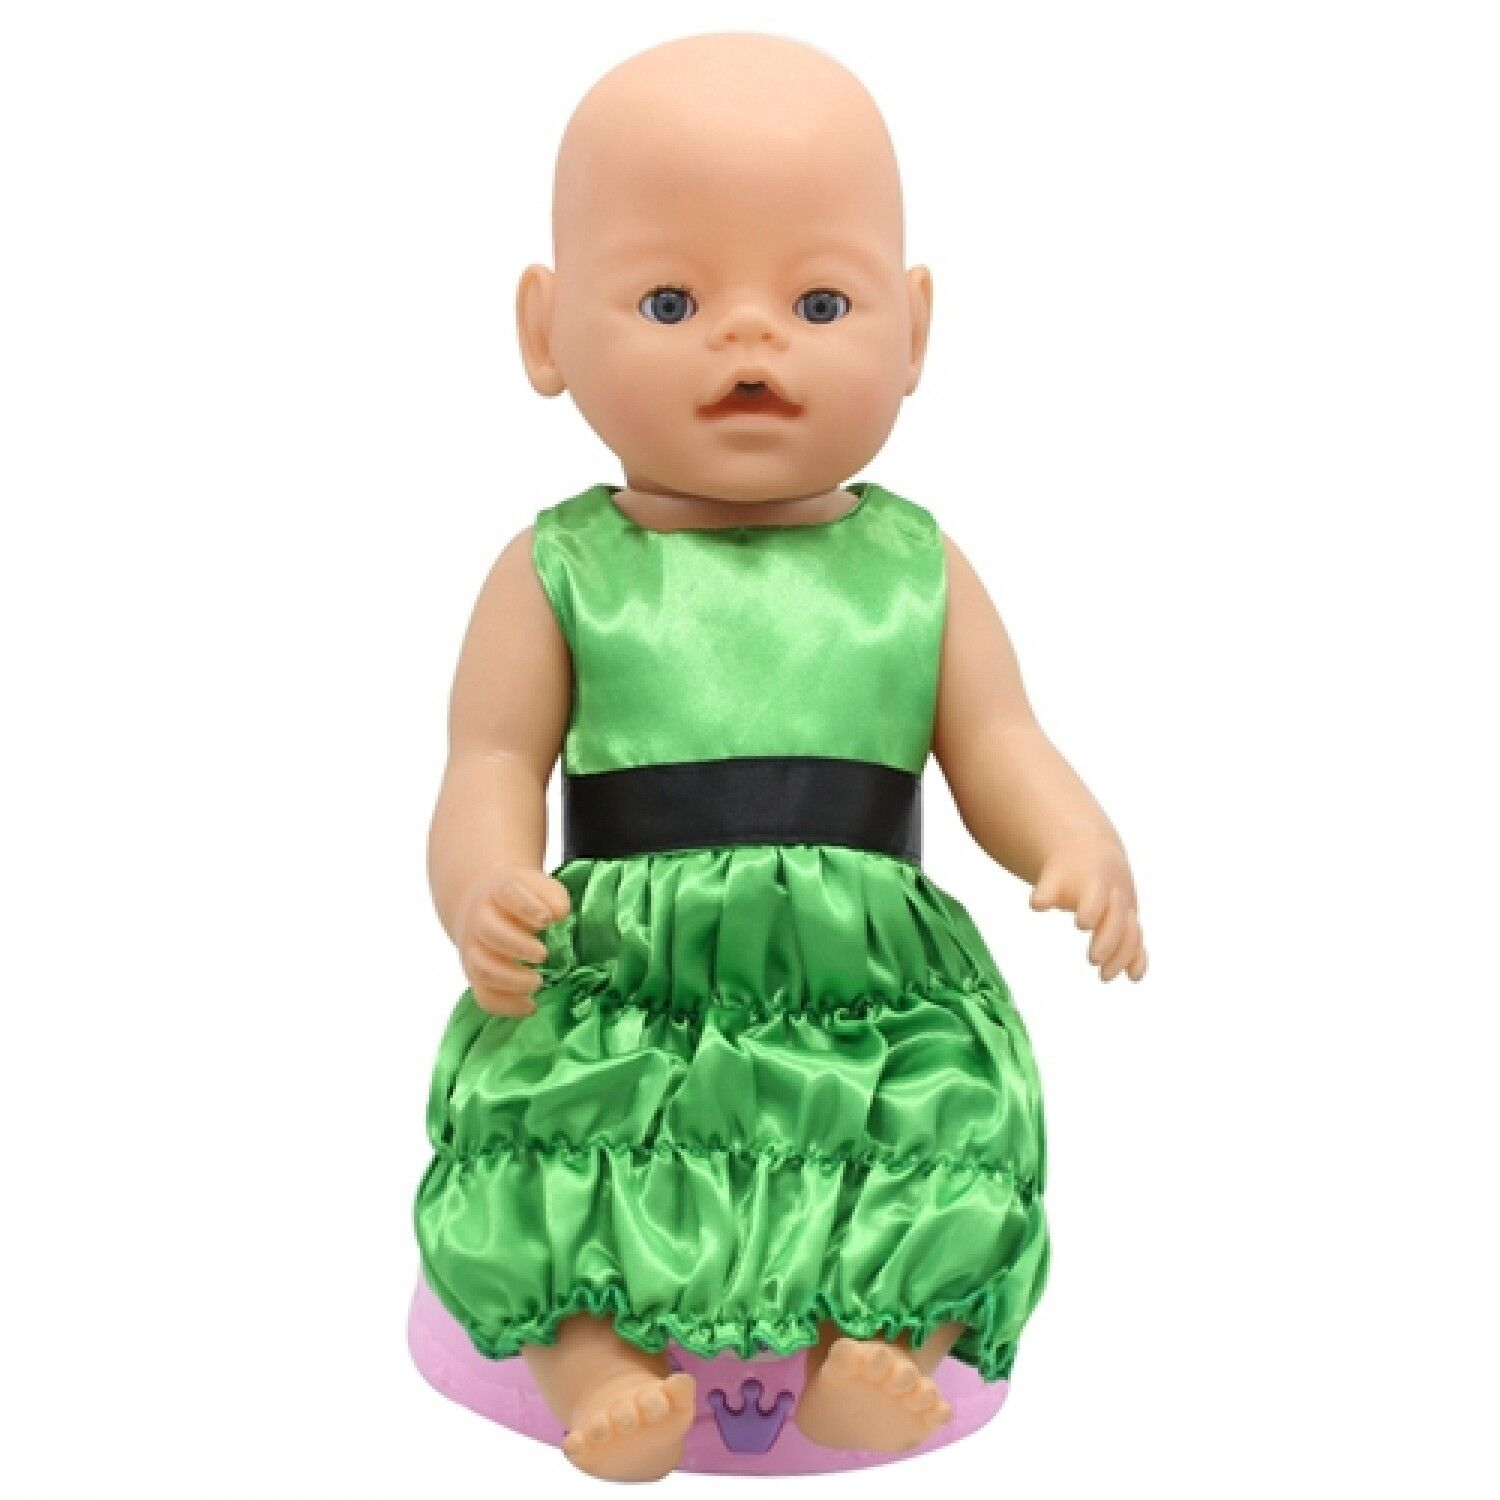 Baby Doll Clothes Princess Dolls Accessories Girls Kids Toys Best